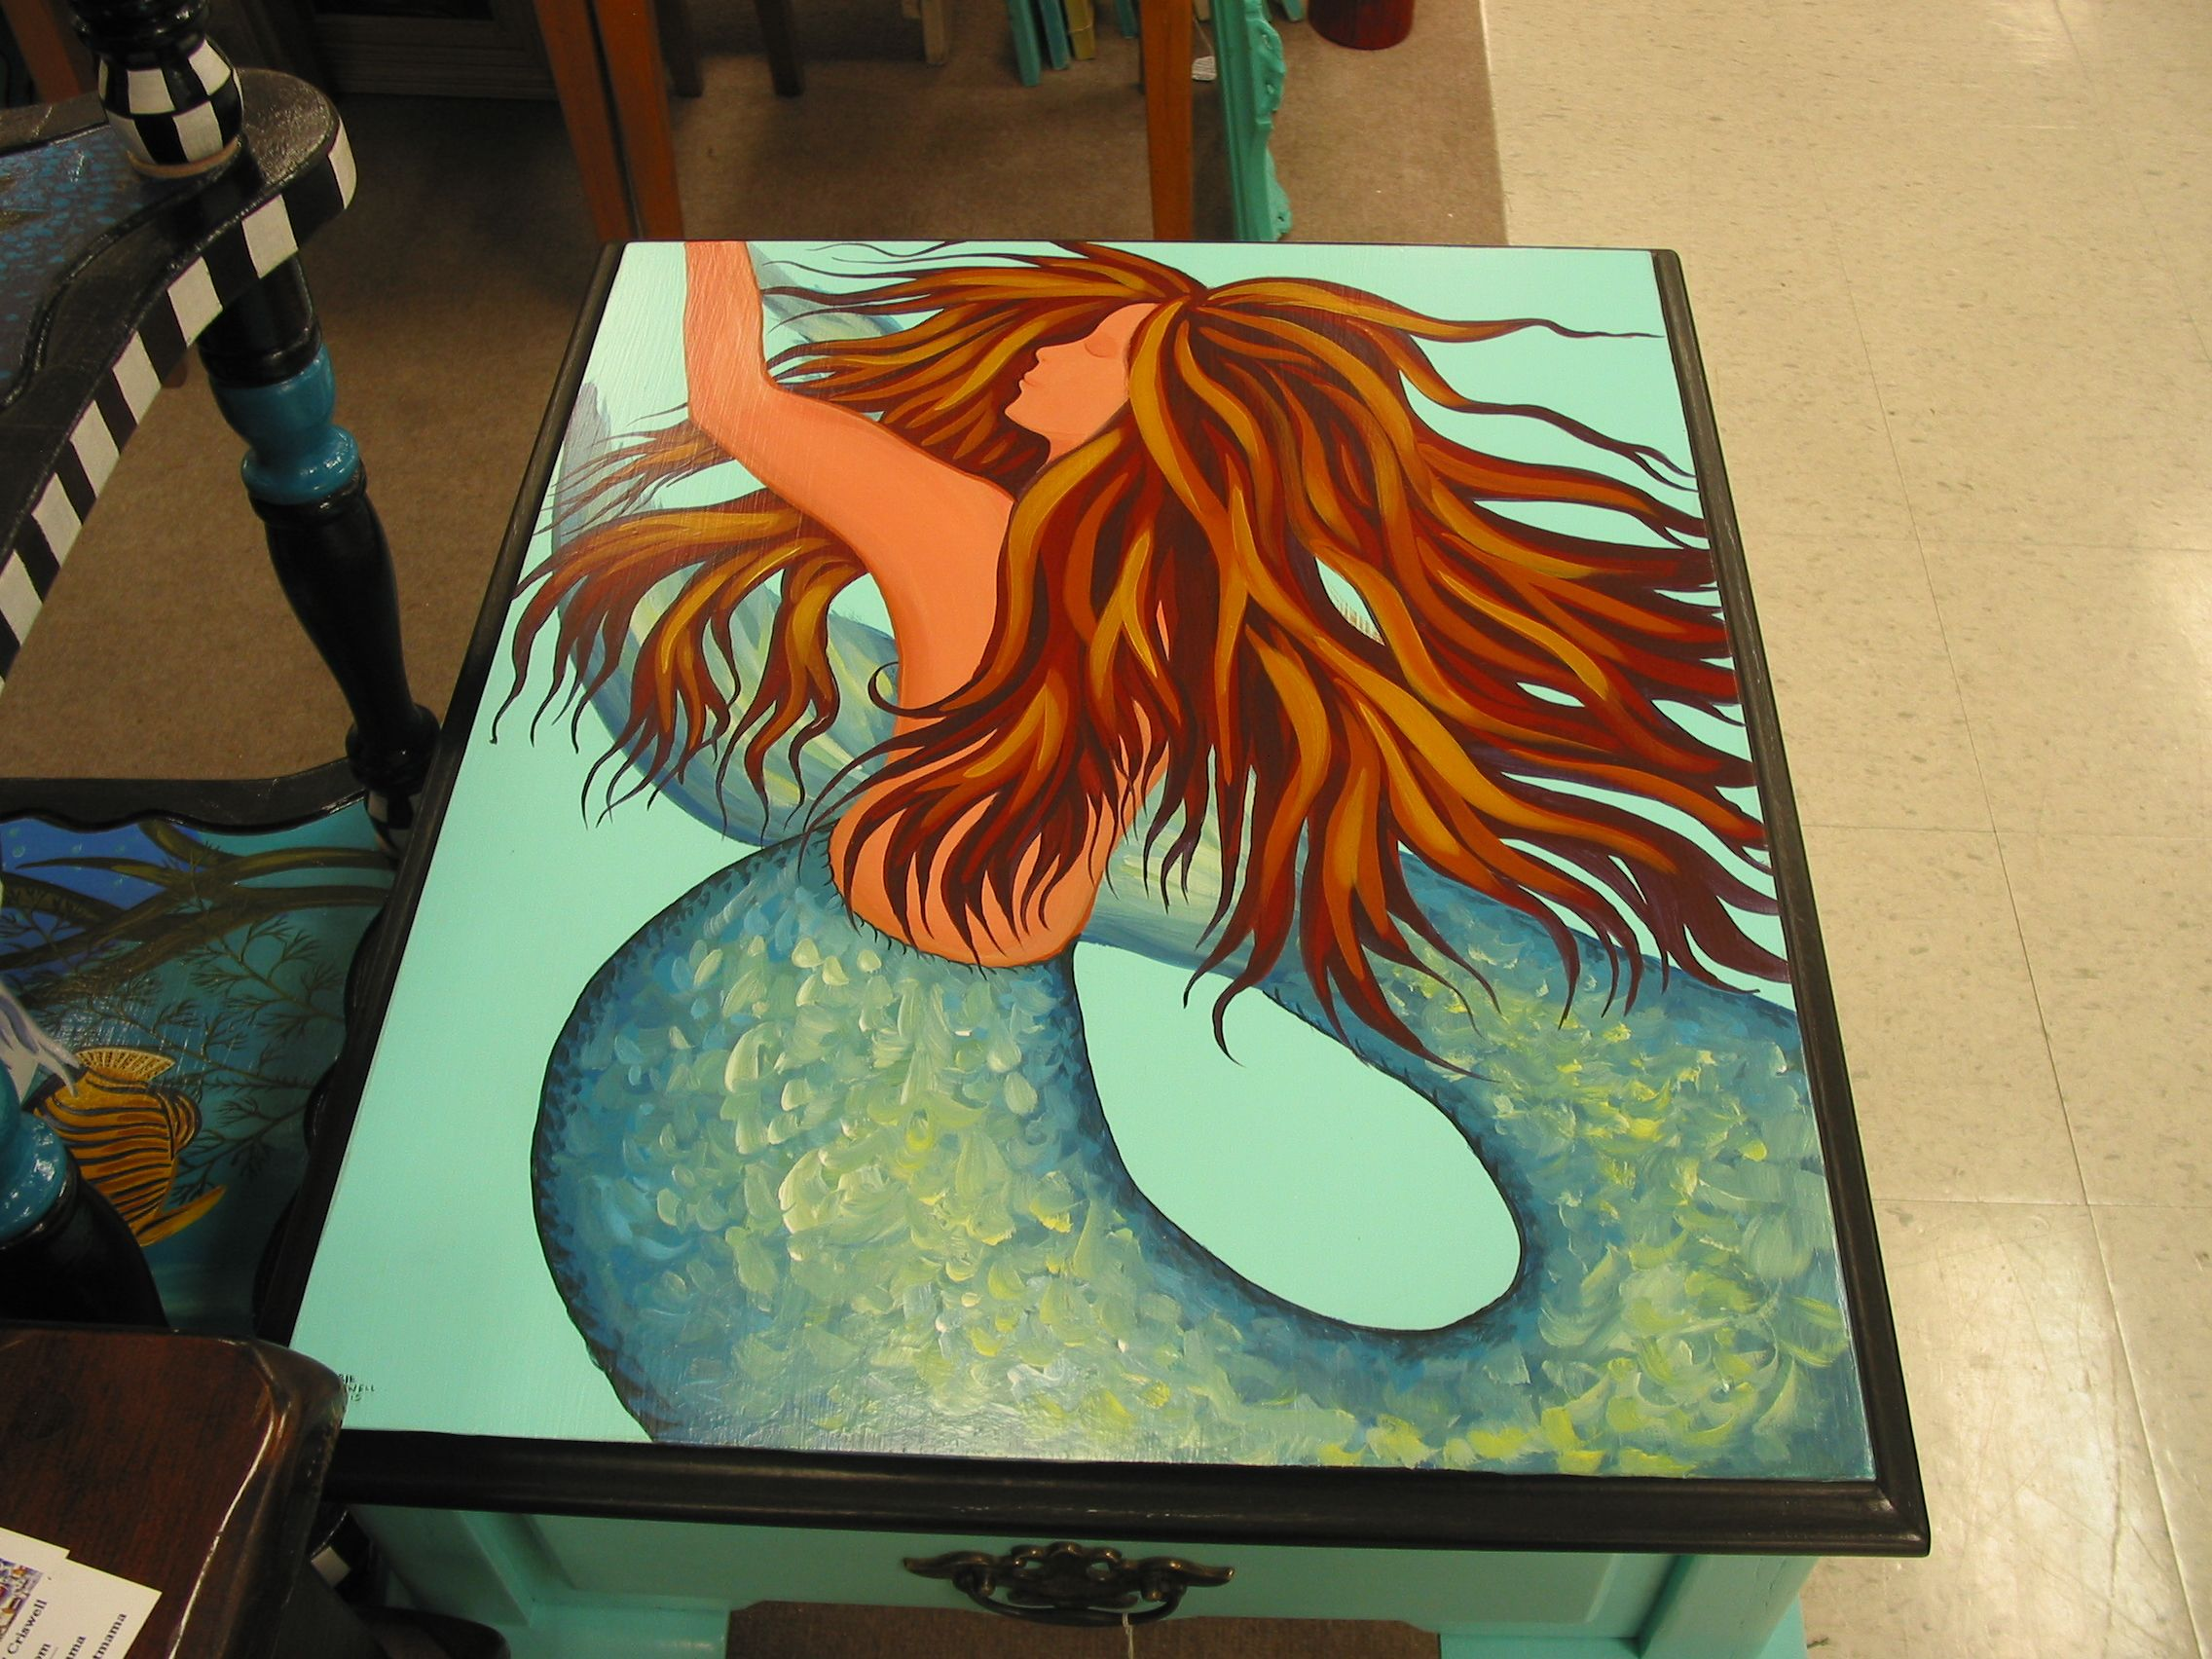 hand painted mermaid table for sale today at treasure trove hudson f folkartmama beach. Black Bedroom Furniture Sets. Home Design Ideas